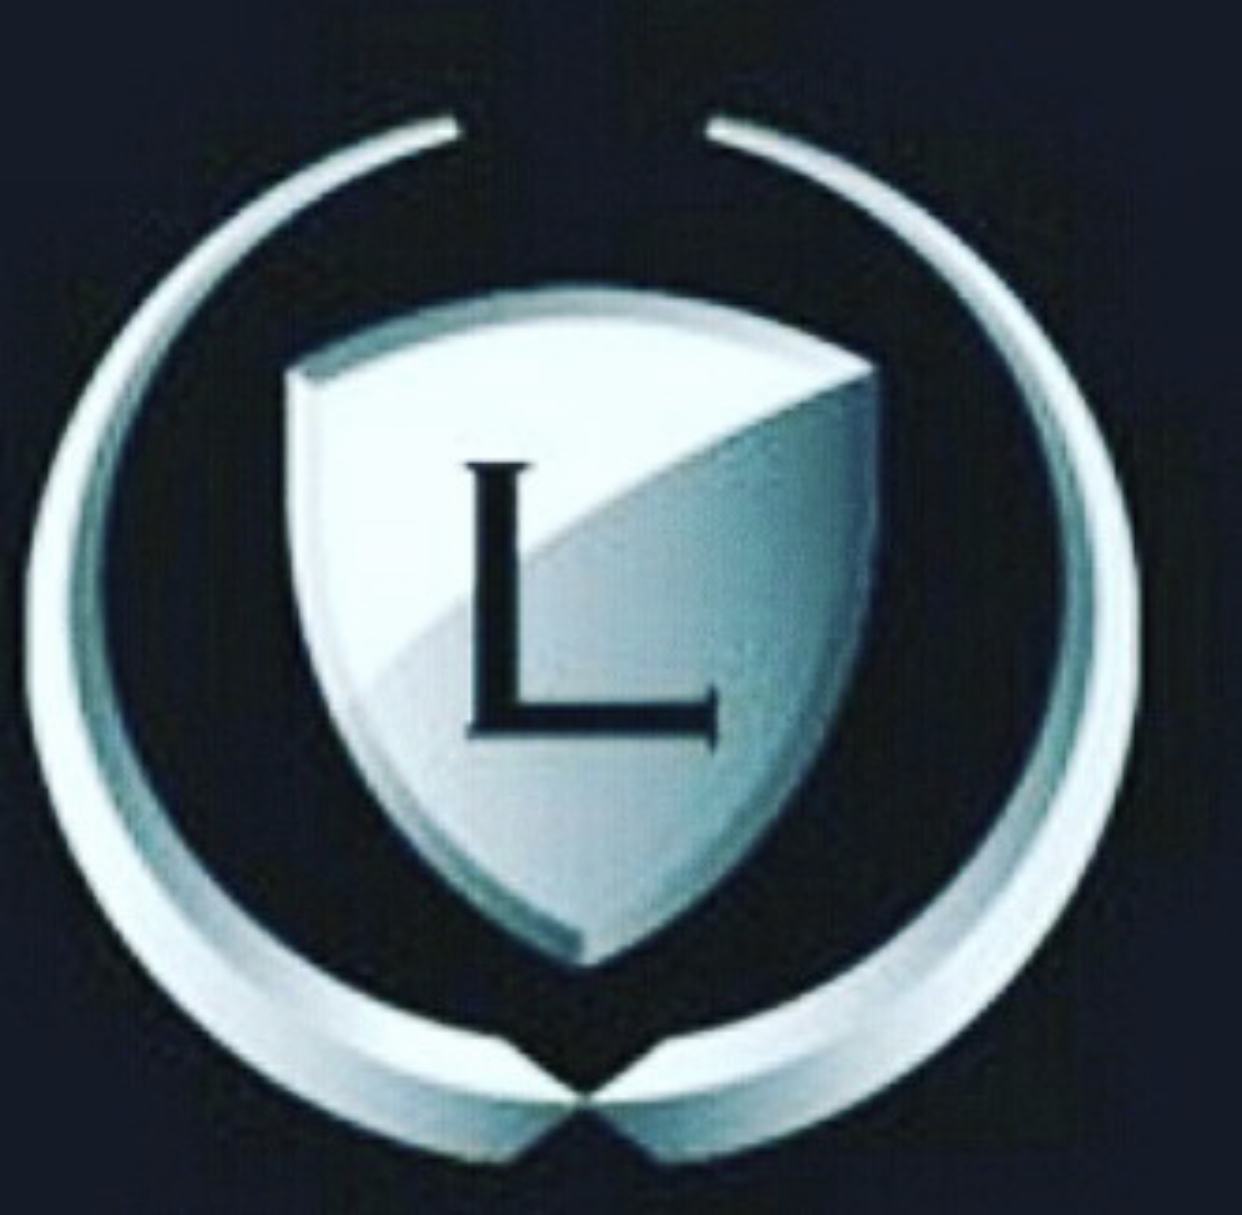 Lux Corp Services LLC